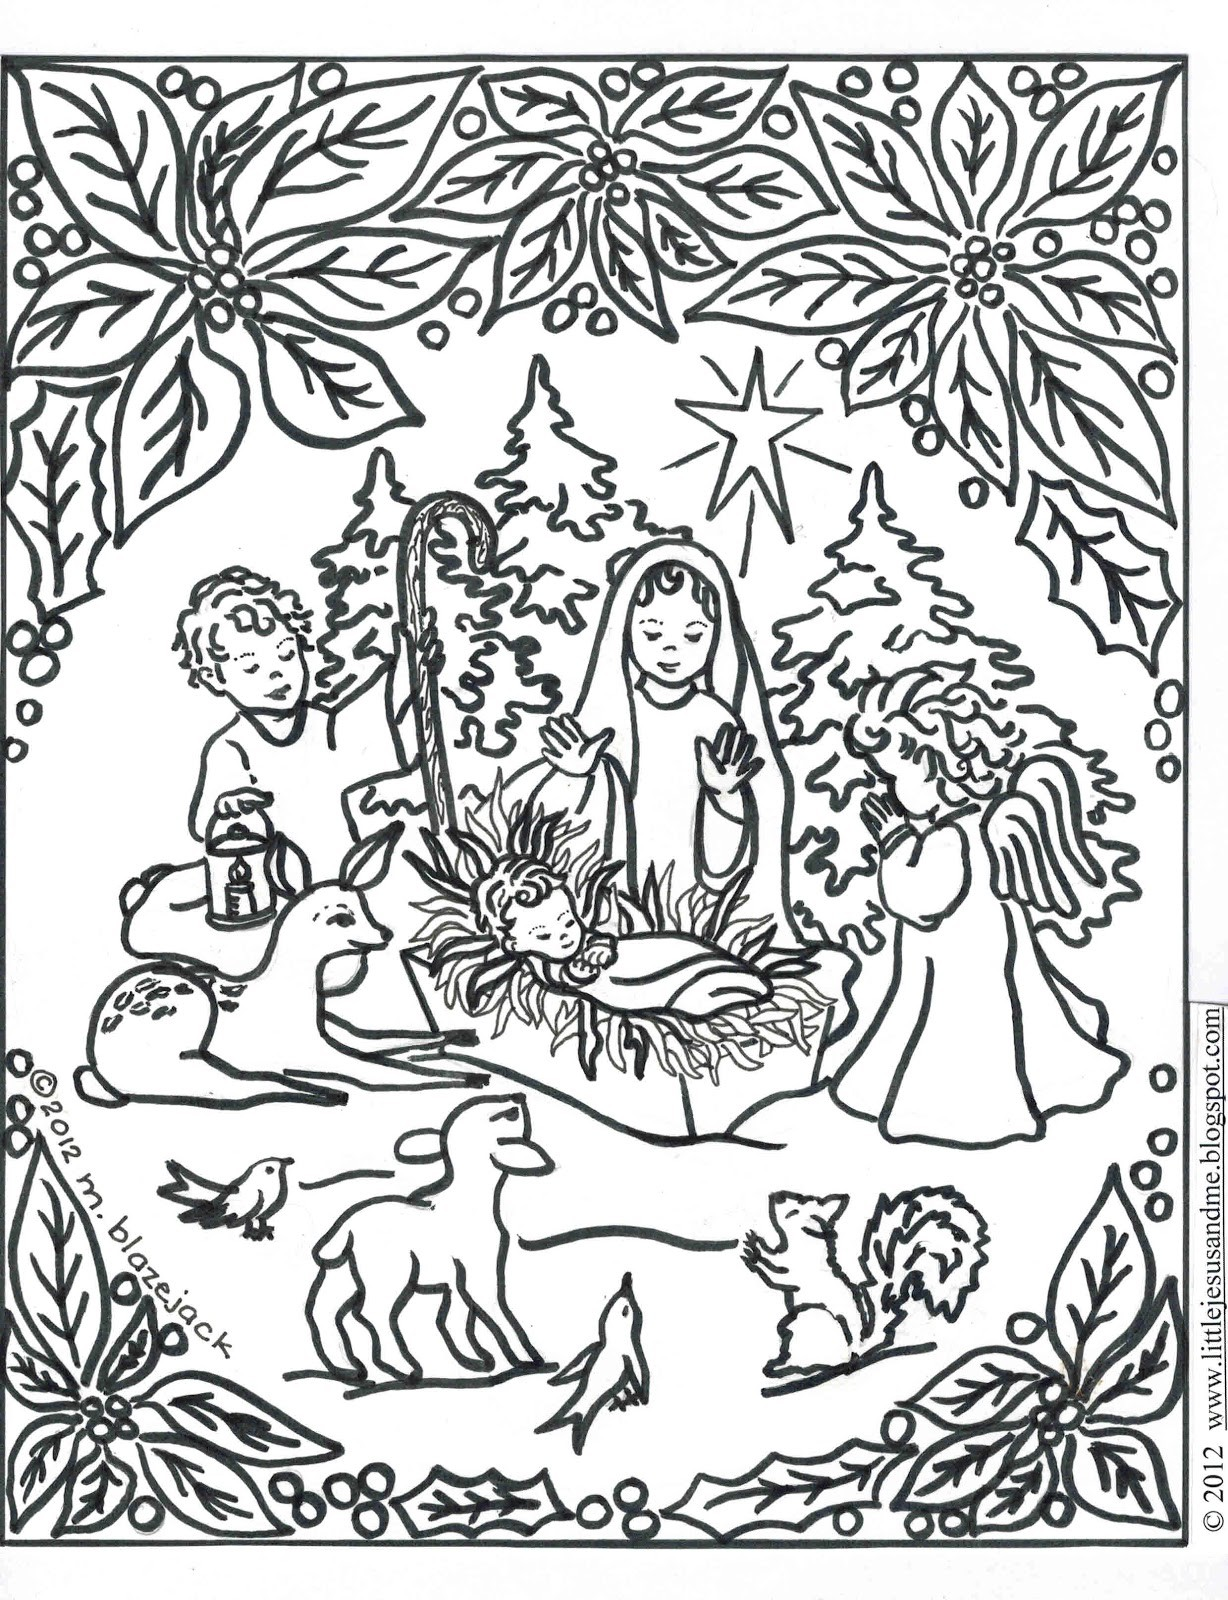 1228x1600 New Christmas Coloring Pages For Middle School Students Fresh